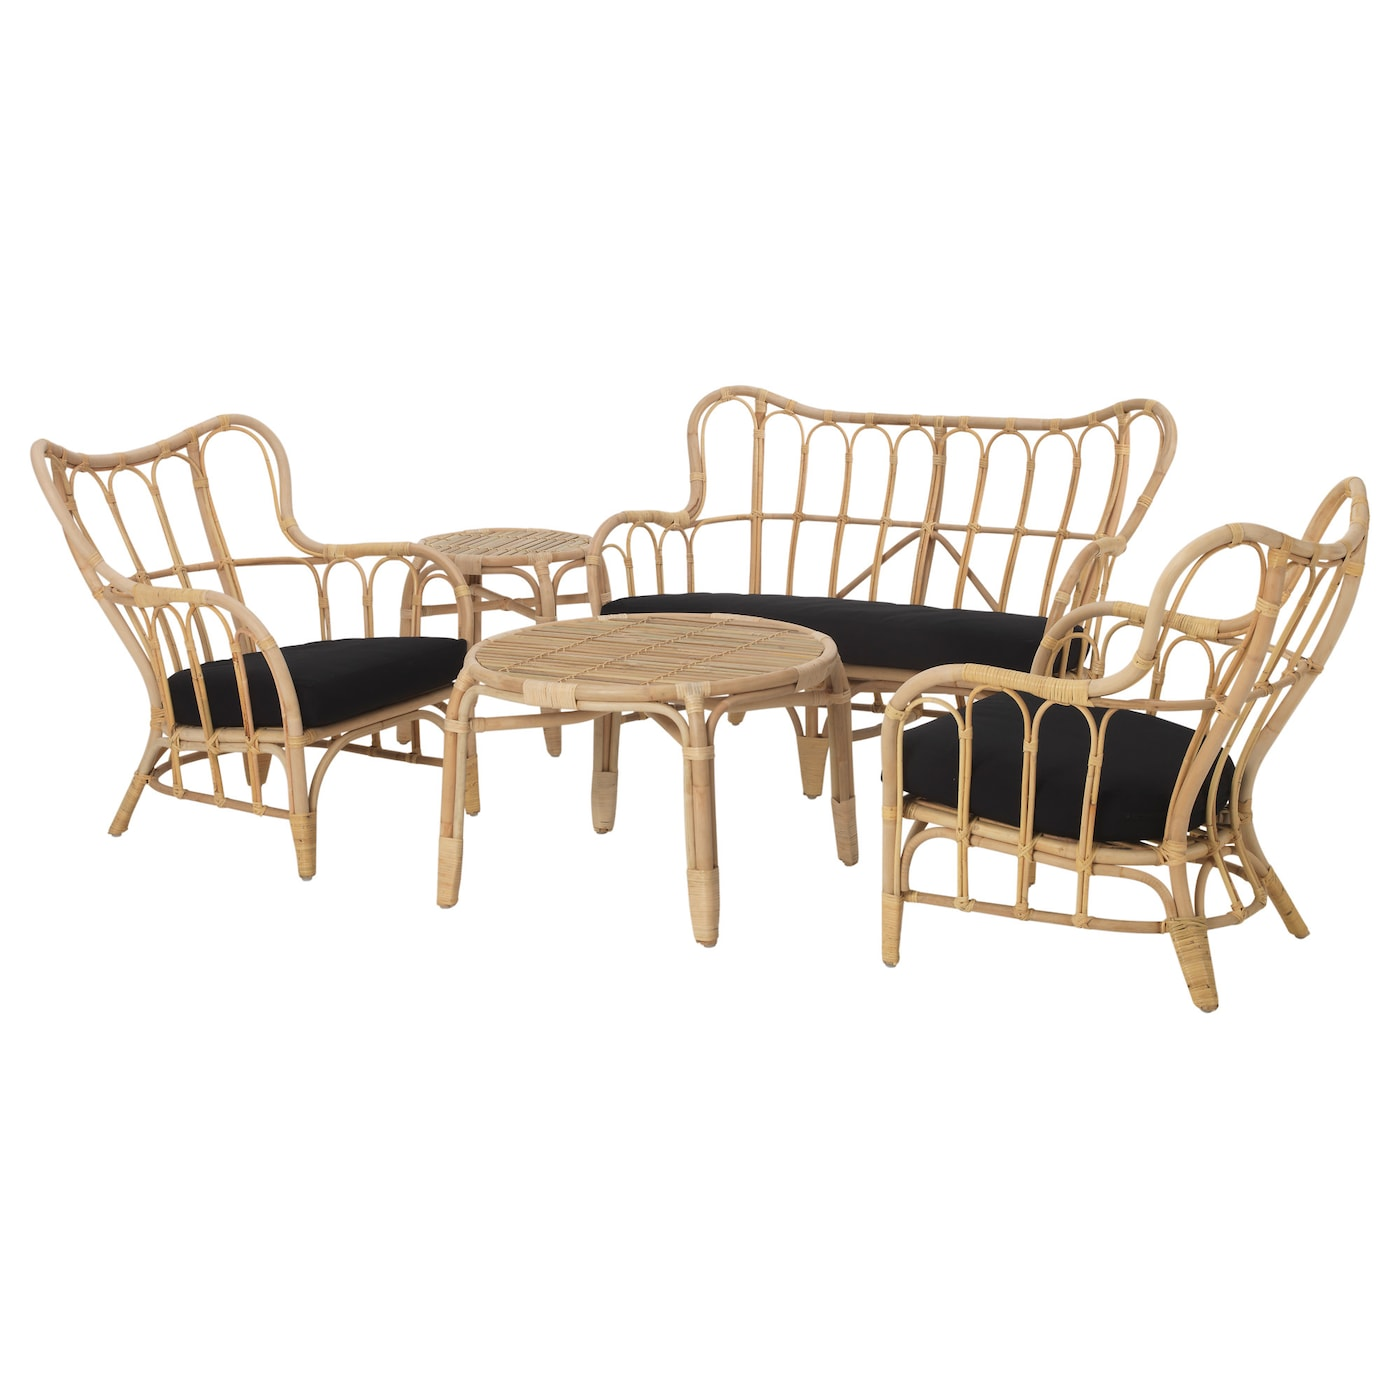 IKEA MASTHOLMEN 4-seat conversation set, outdoor Handmade by a skilled craftsman.